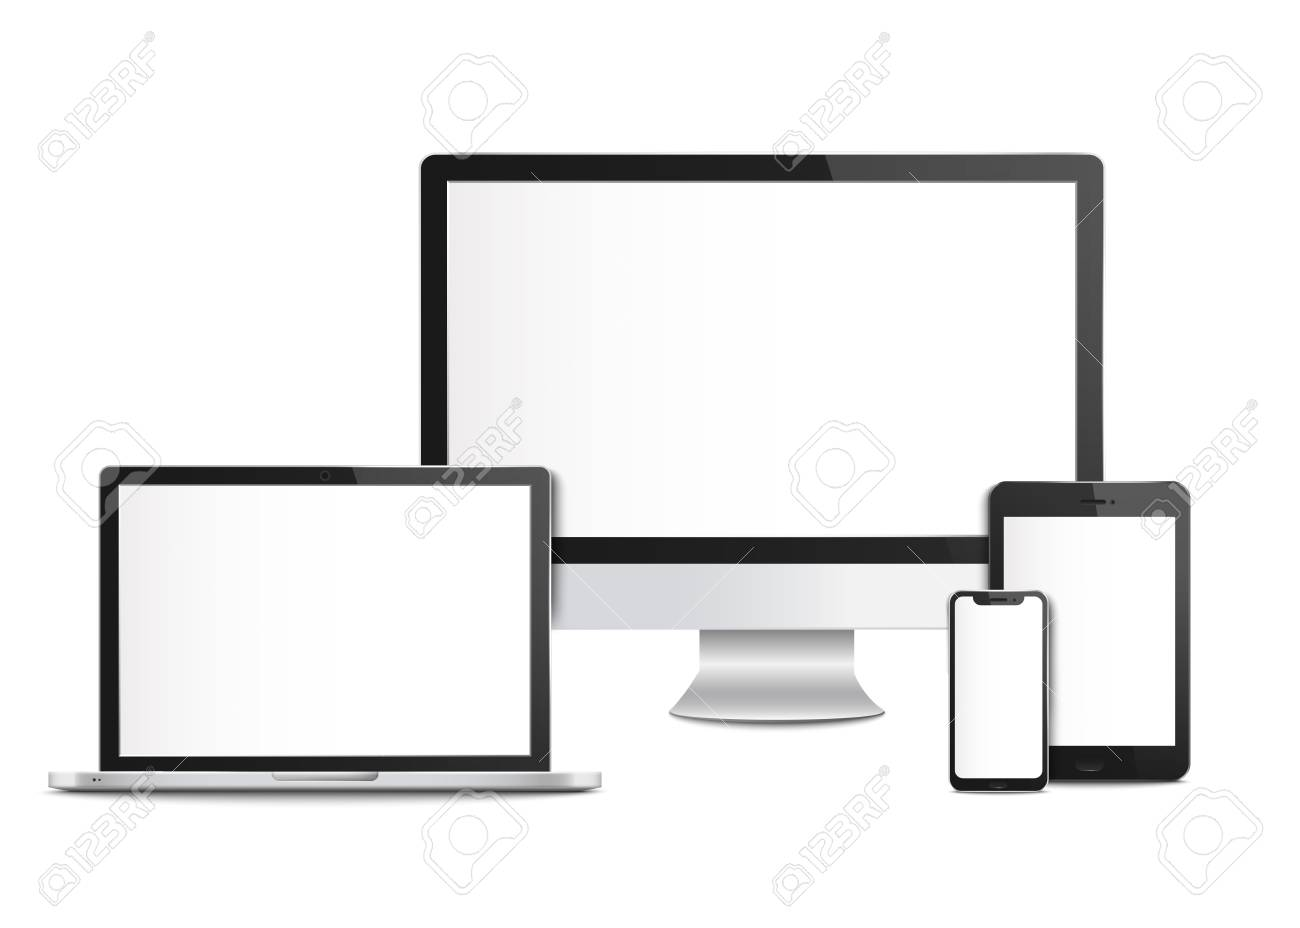 Realistic blank computer devices with screens, templates and mockups of mobile phone and tablet, desktop monitor and laptop. Computer devices and smartphone, 3d gadget, vector illustration. - 124787722